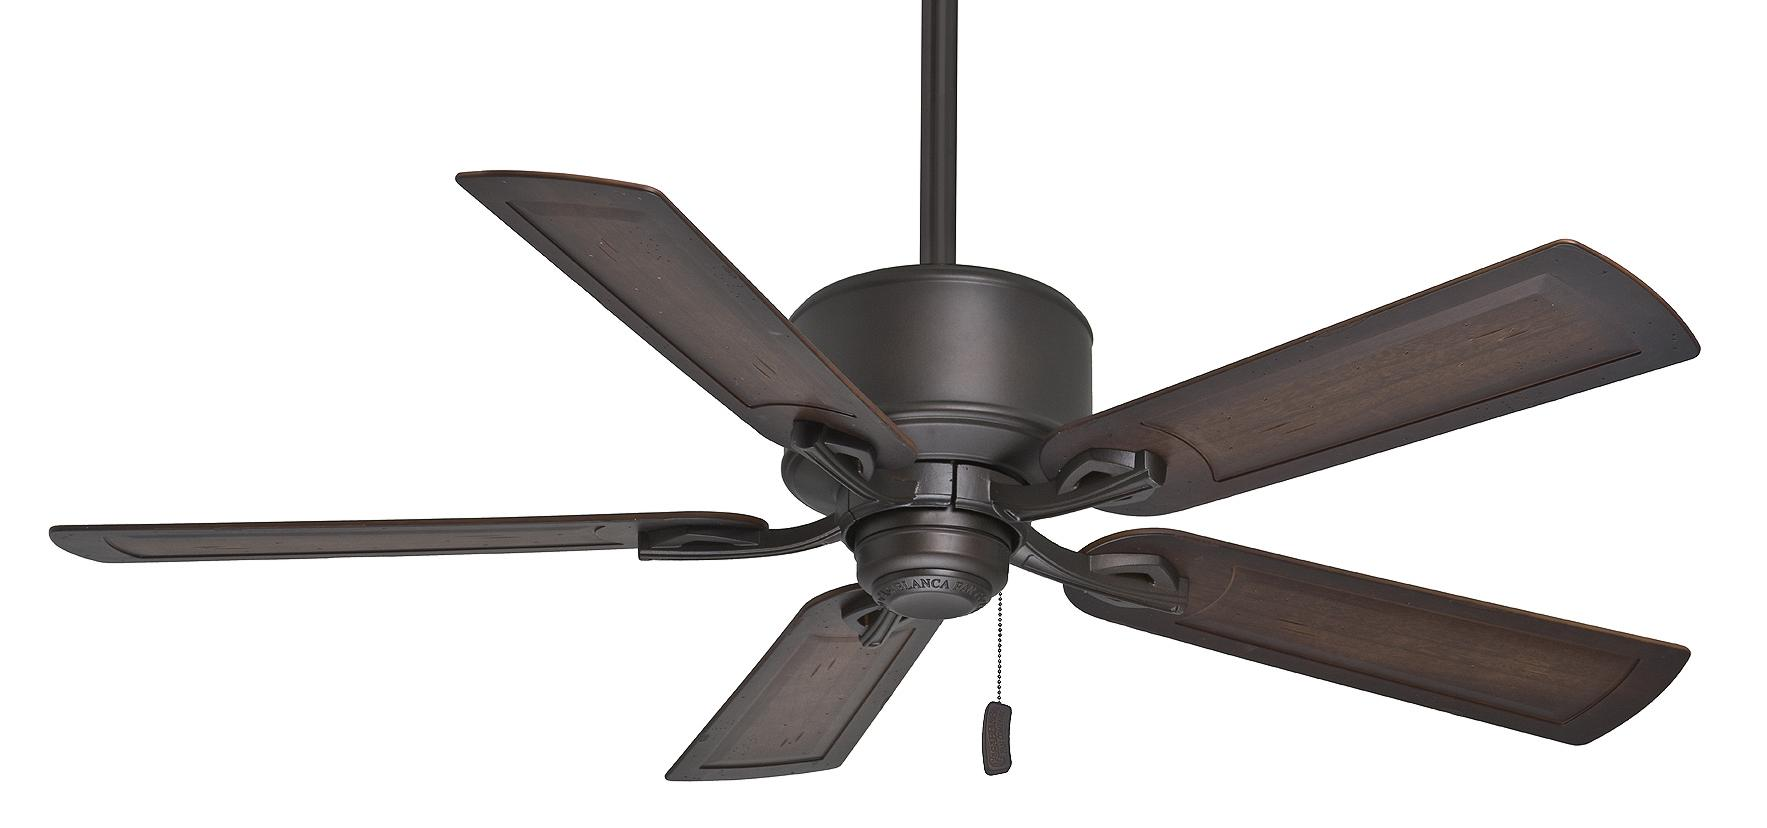 beautiful Compass Point Ceiling Fan CA 54011 in Maiden Bronze by casablanca ceiling fans for ceiling decor ideas